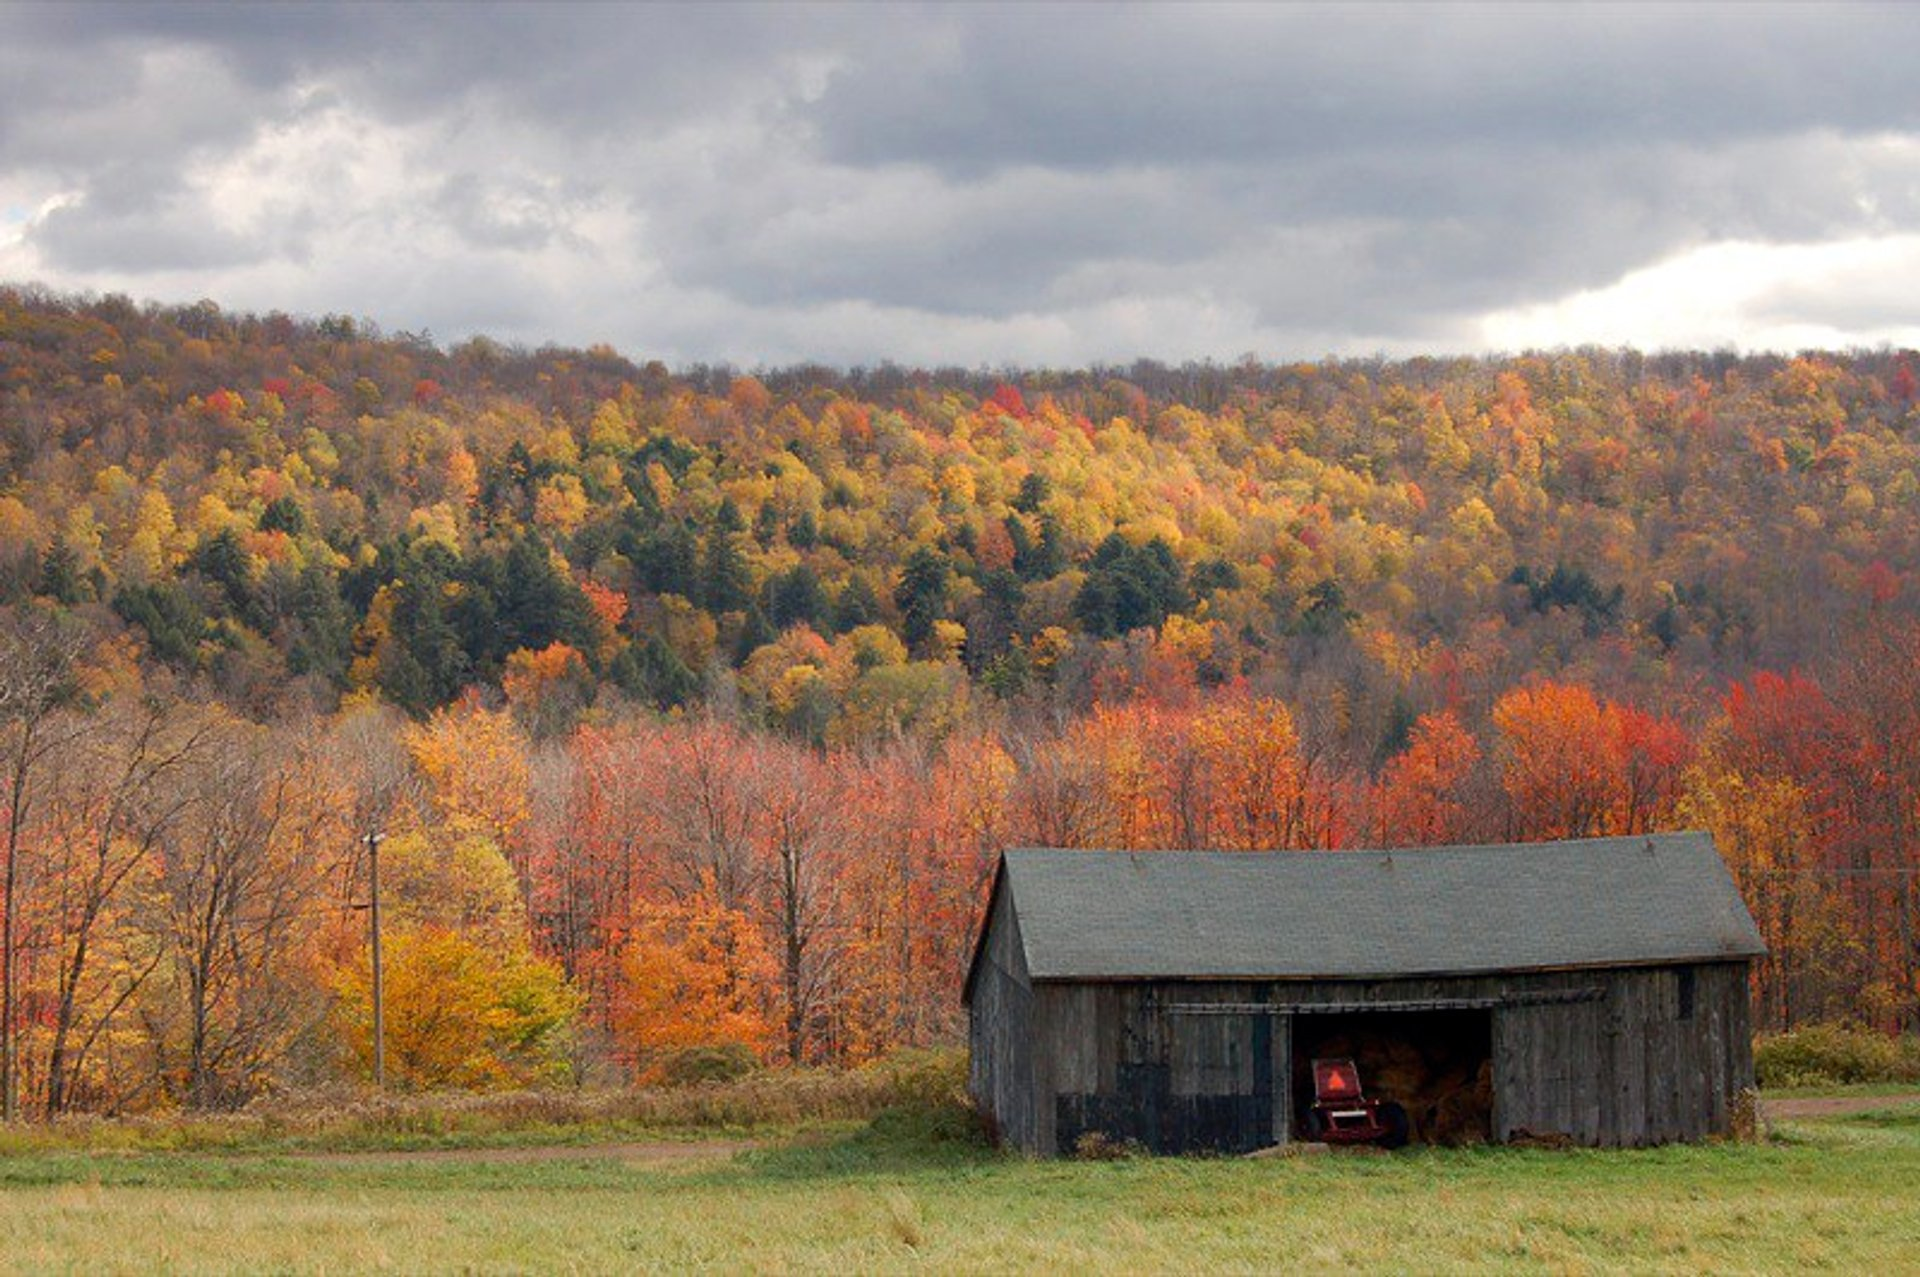 The Catskill Mountains (The Catskills) in New York State 2020 - Best Time